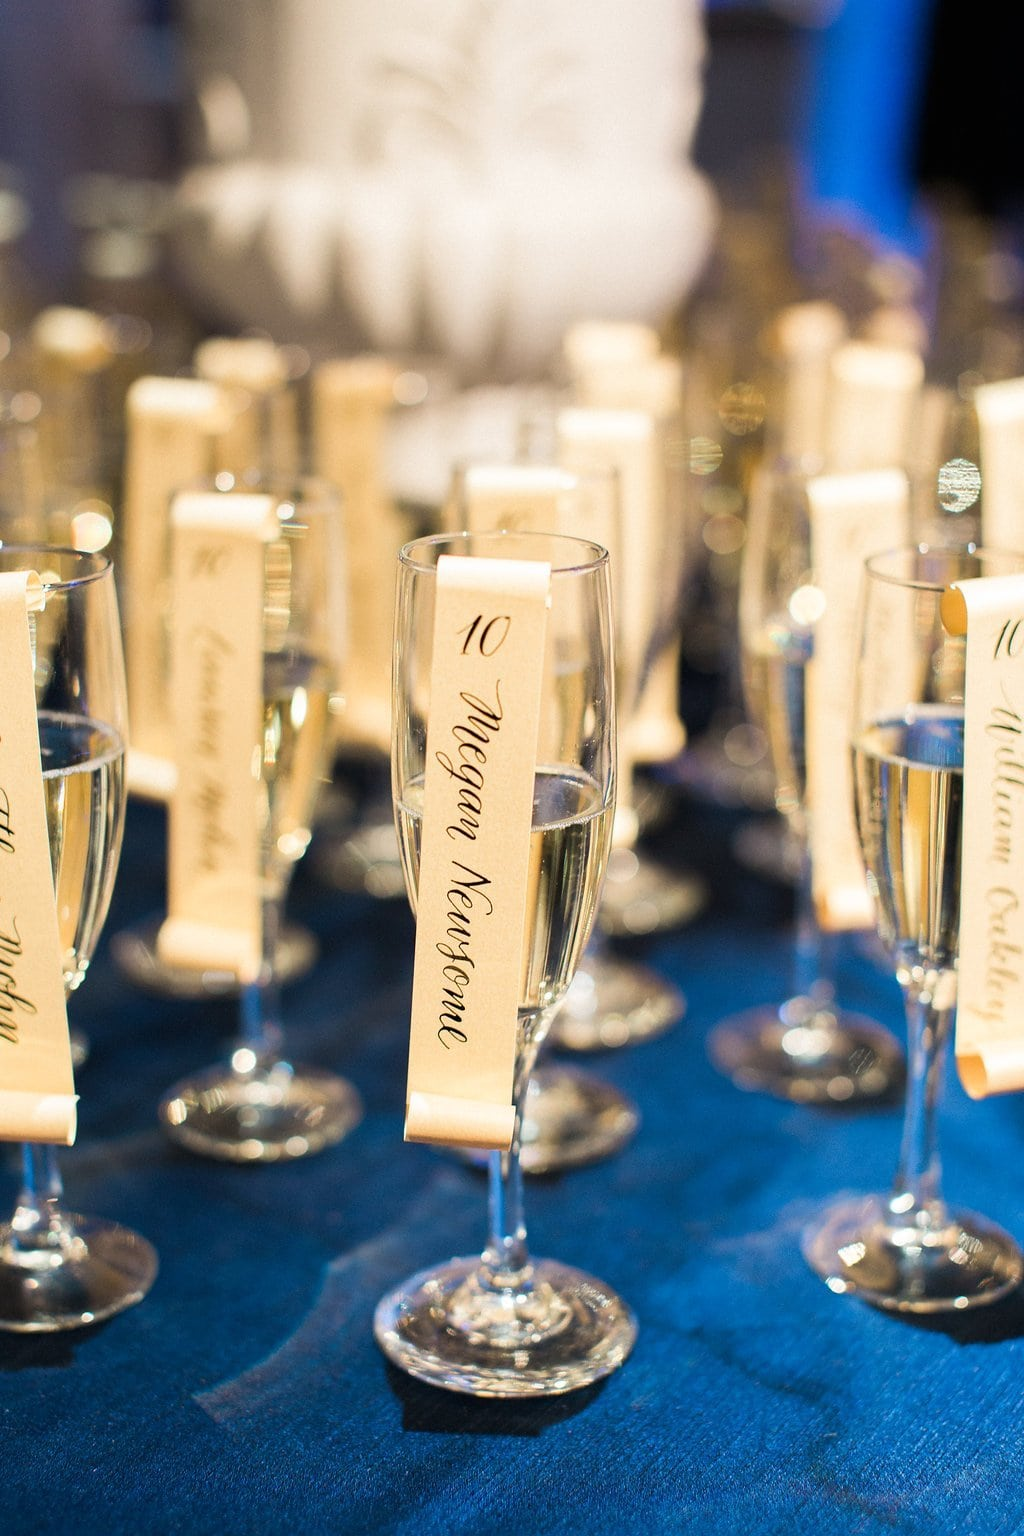 Calligraphy escort scrolls sitting in glasses of champagne for guests at this winter wedding - J Verno Studios Winter Wedding